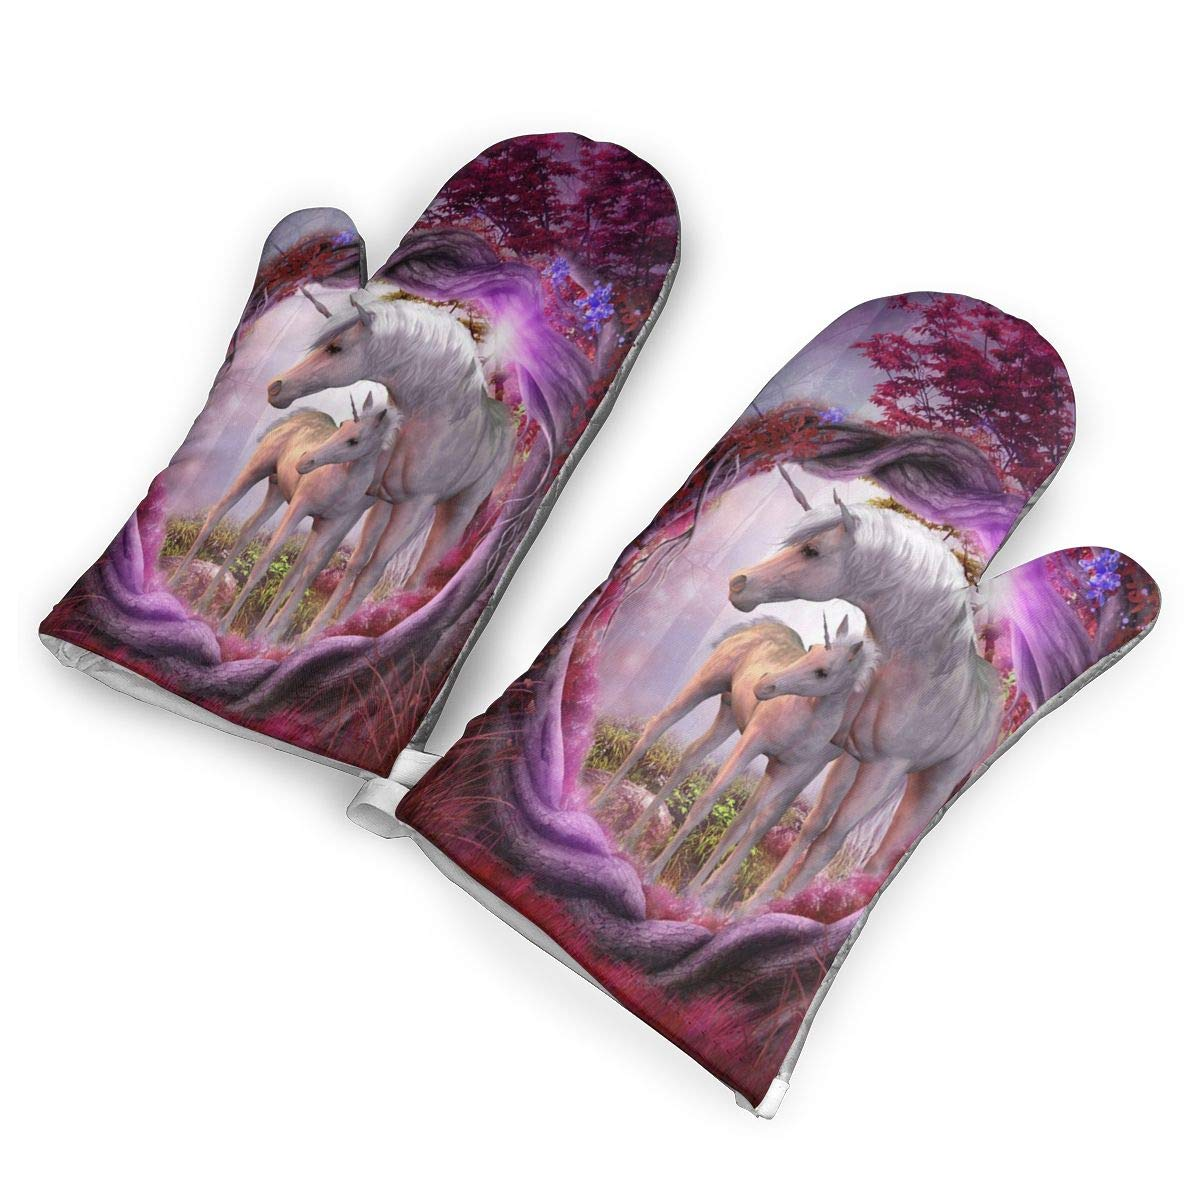 Feederm Unicorn Horse Magical Animal Rose Red Tree Oven Mitts,Professional Heat Resistant Microwave Oven Insulation Thickening Gloves Baking Pot Mittens Soft Inner Lining Kitchen Cooking